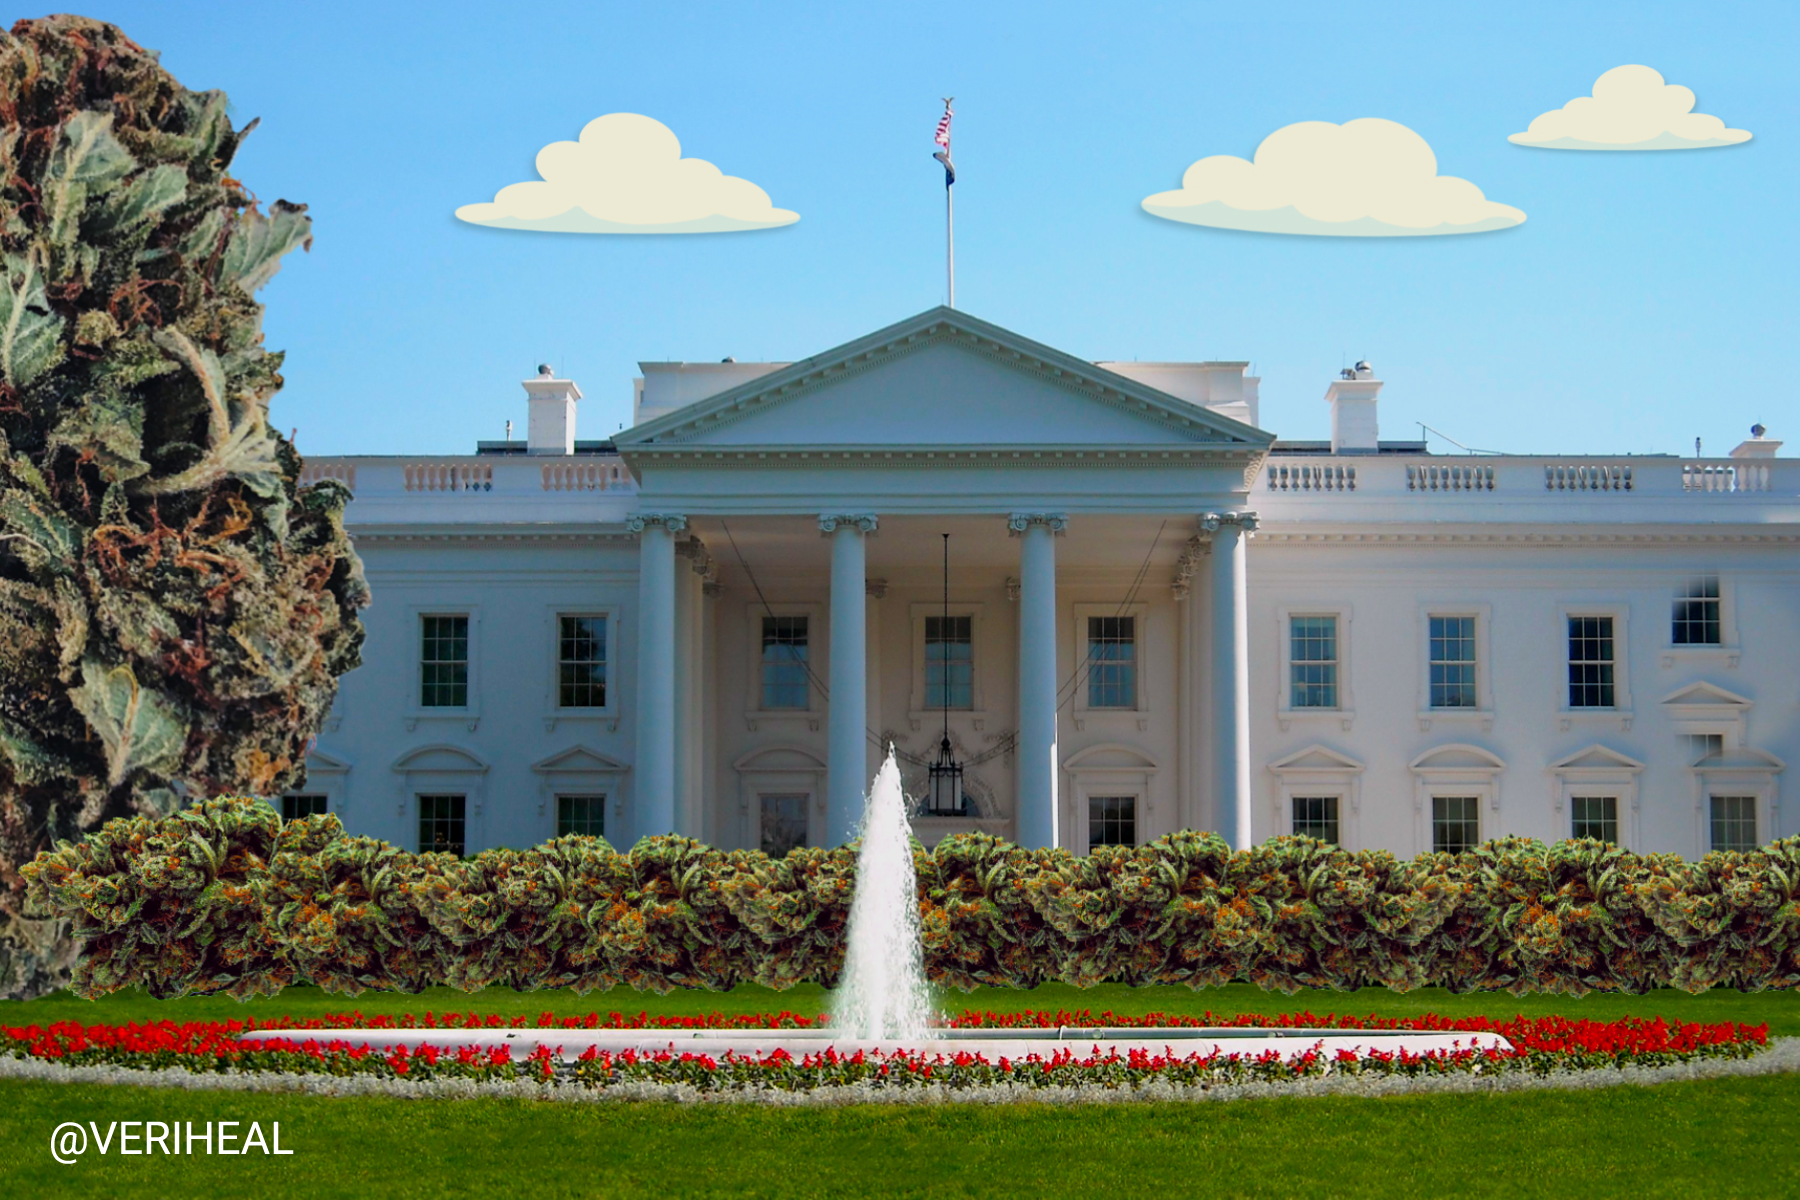 The White House Asks Staff to Resign Over Past Cannabis Use Despite Easing Restrictions